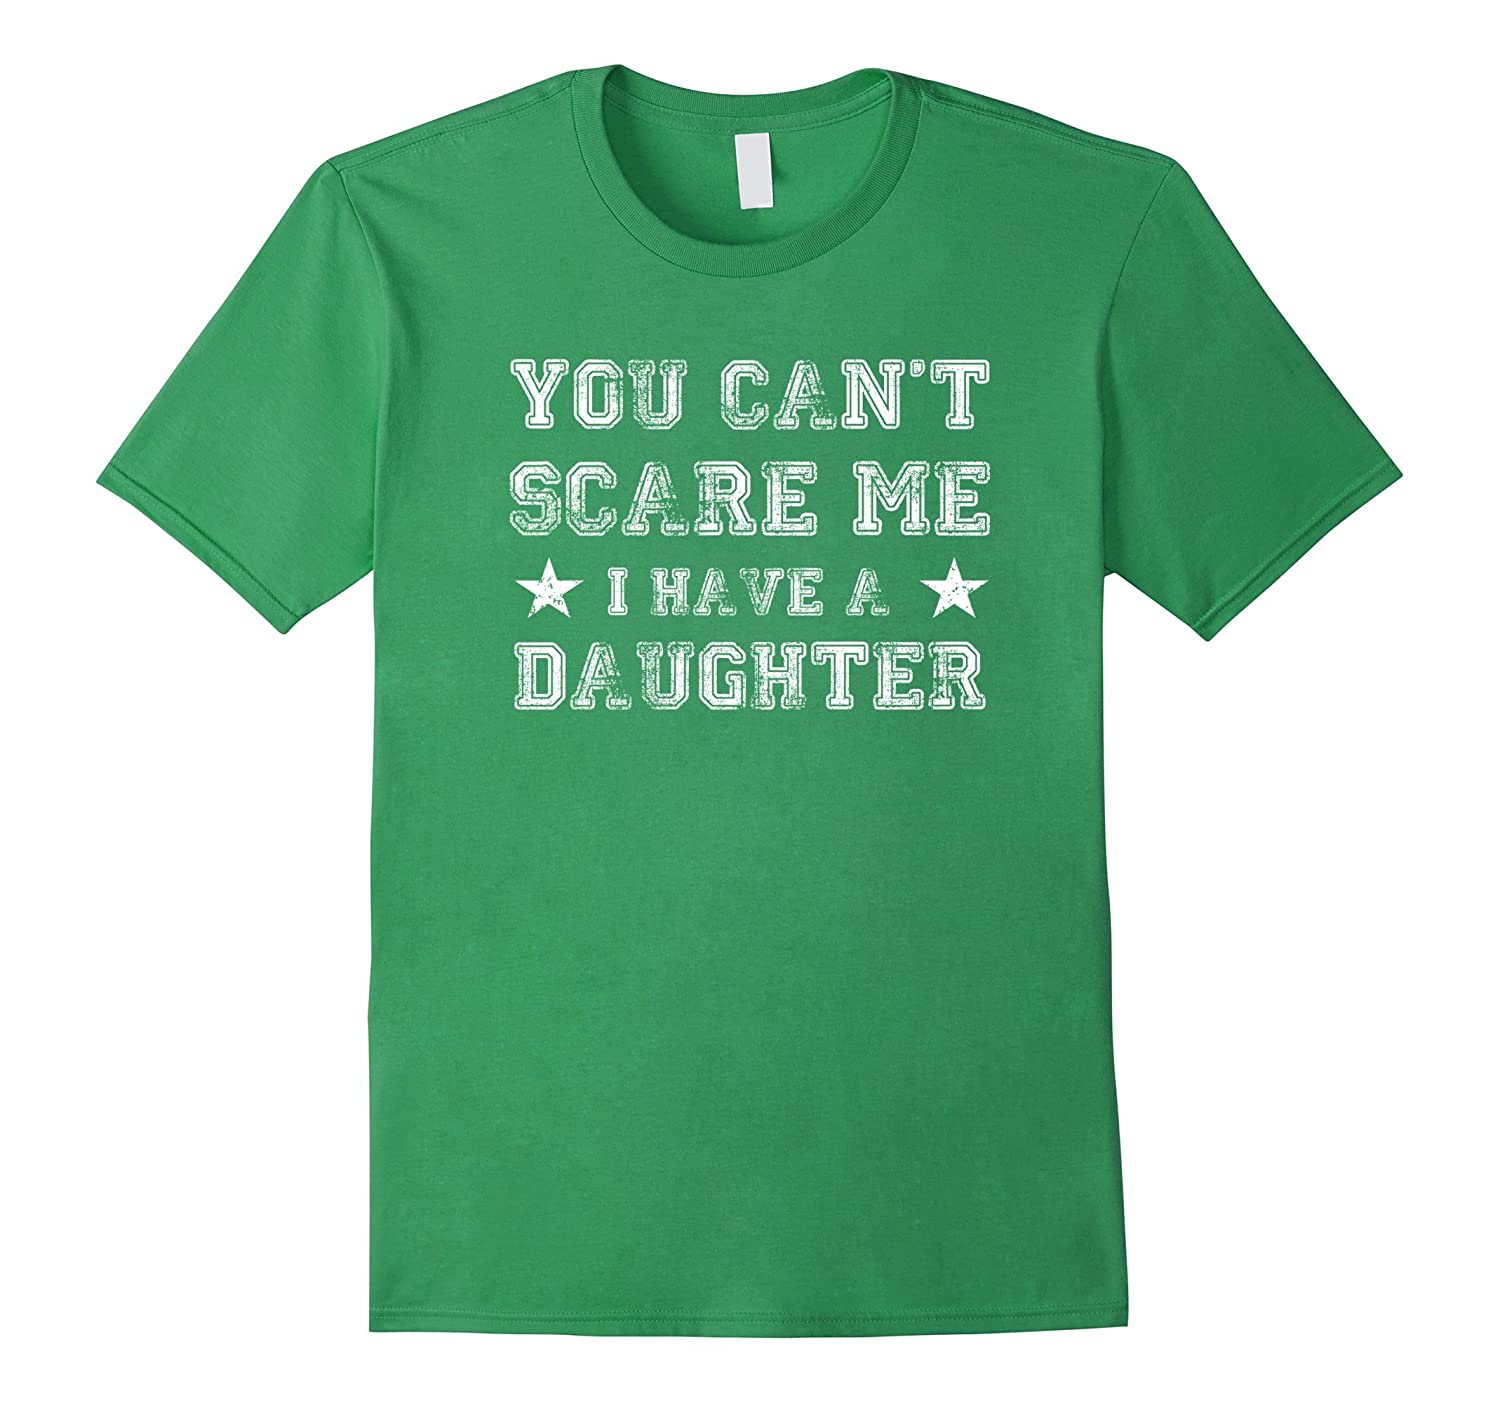 Mens You Can't Scare Me I Have A Daughter